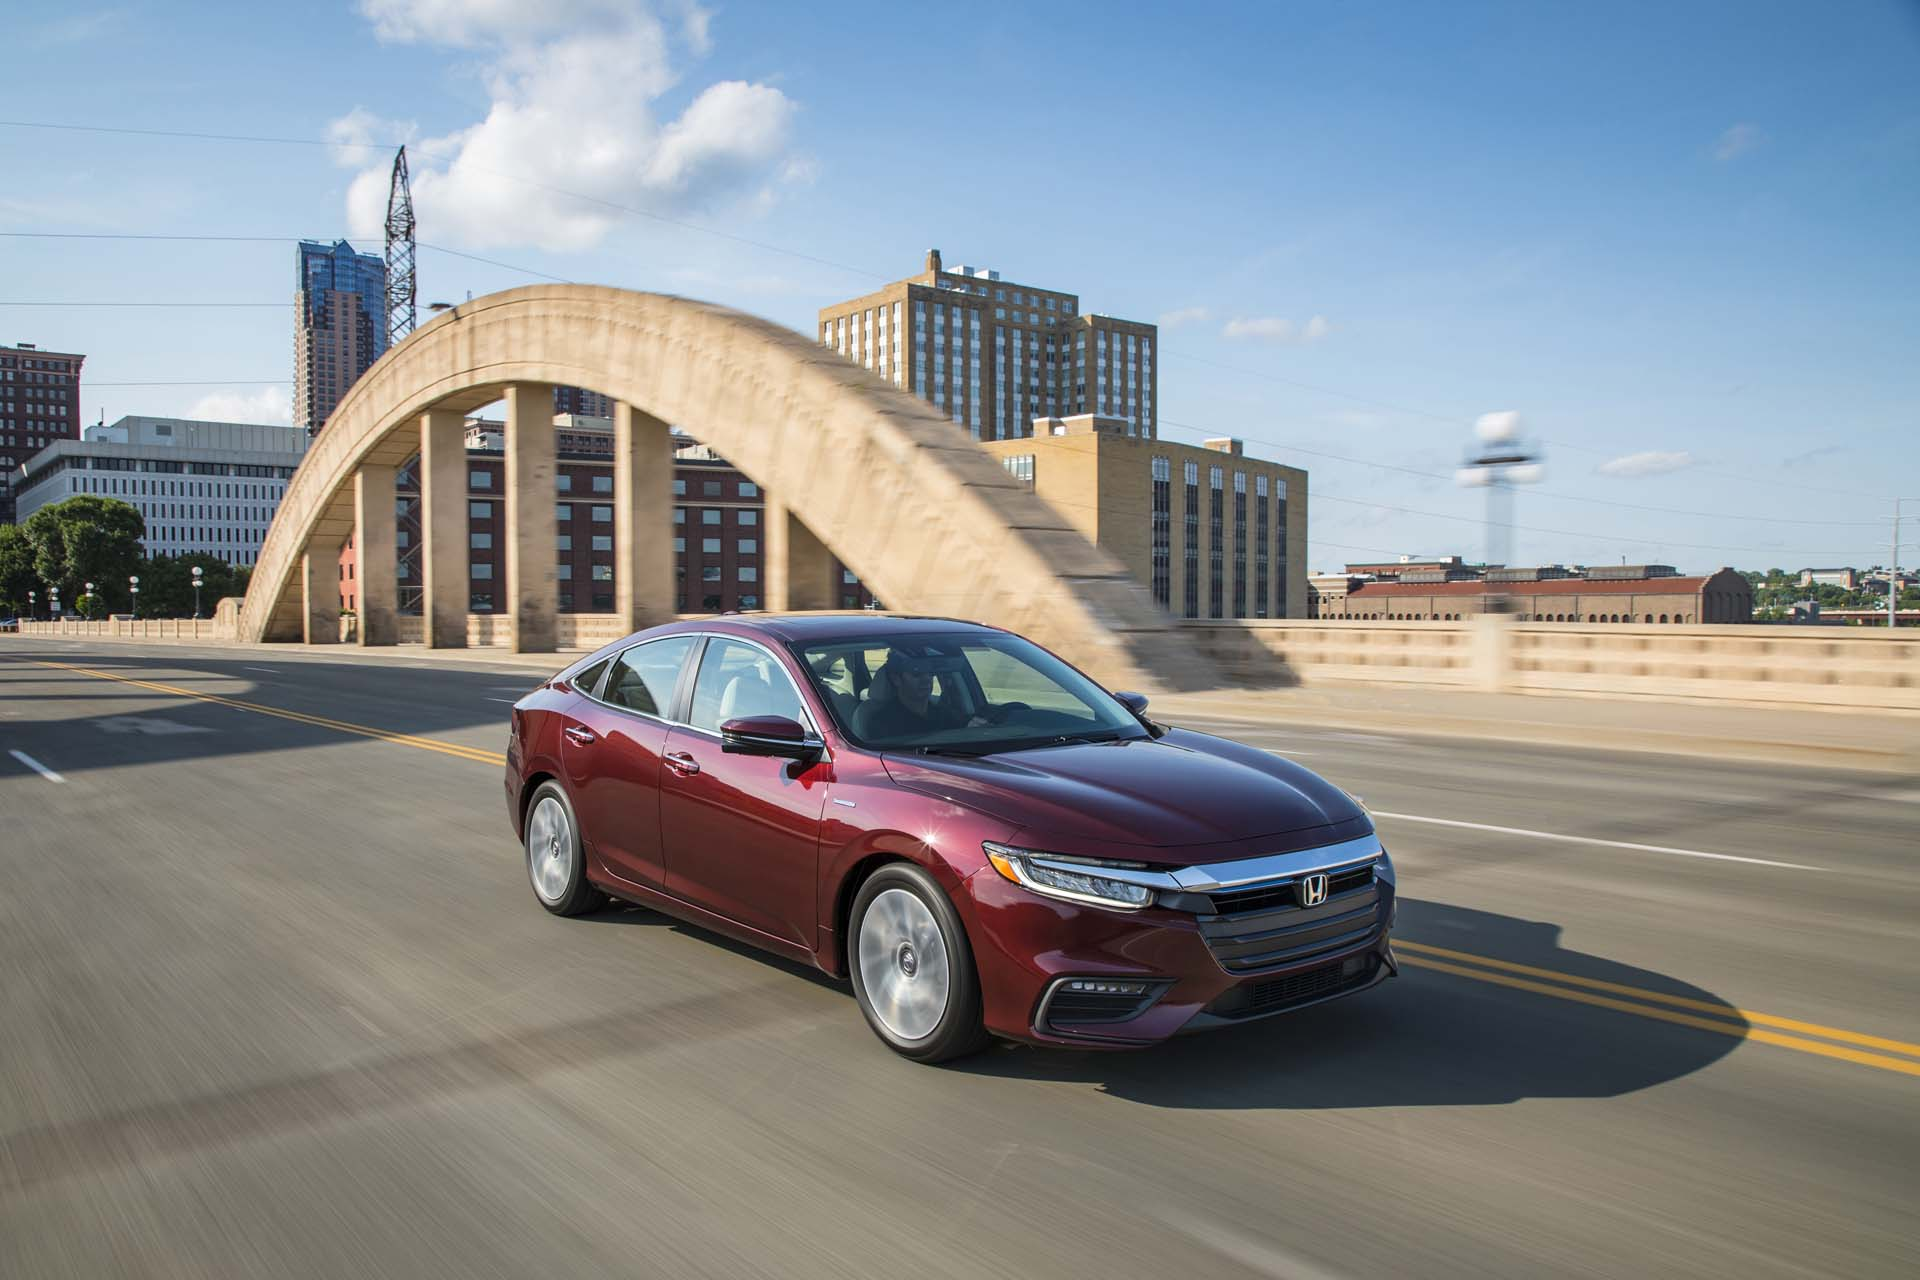 2019 honda insight, chevy bolt ev fast charging, and fuel economy